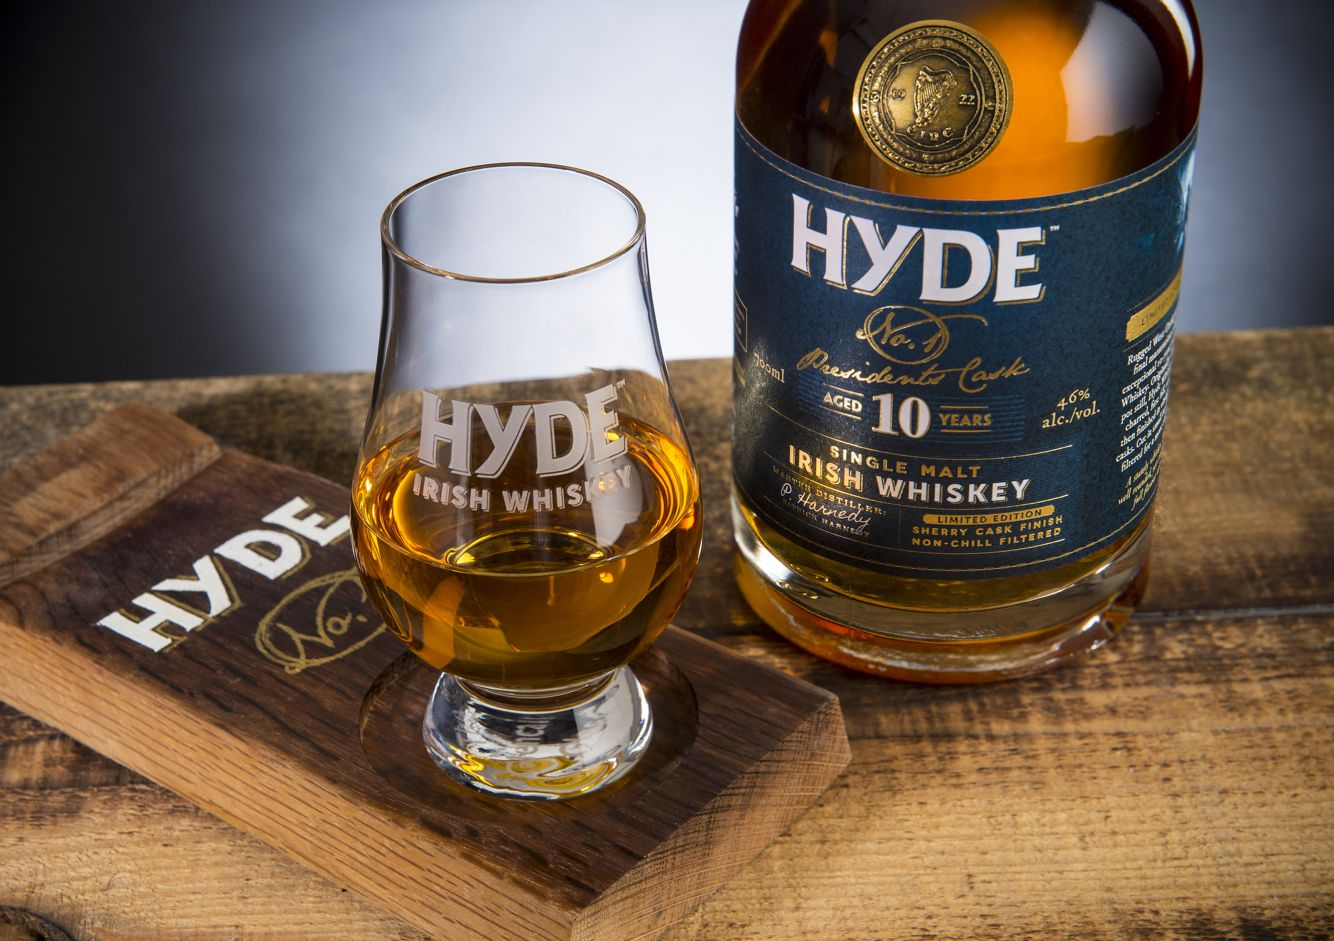 Hyde Irish whiskey single malt with a sherry finish